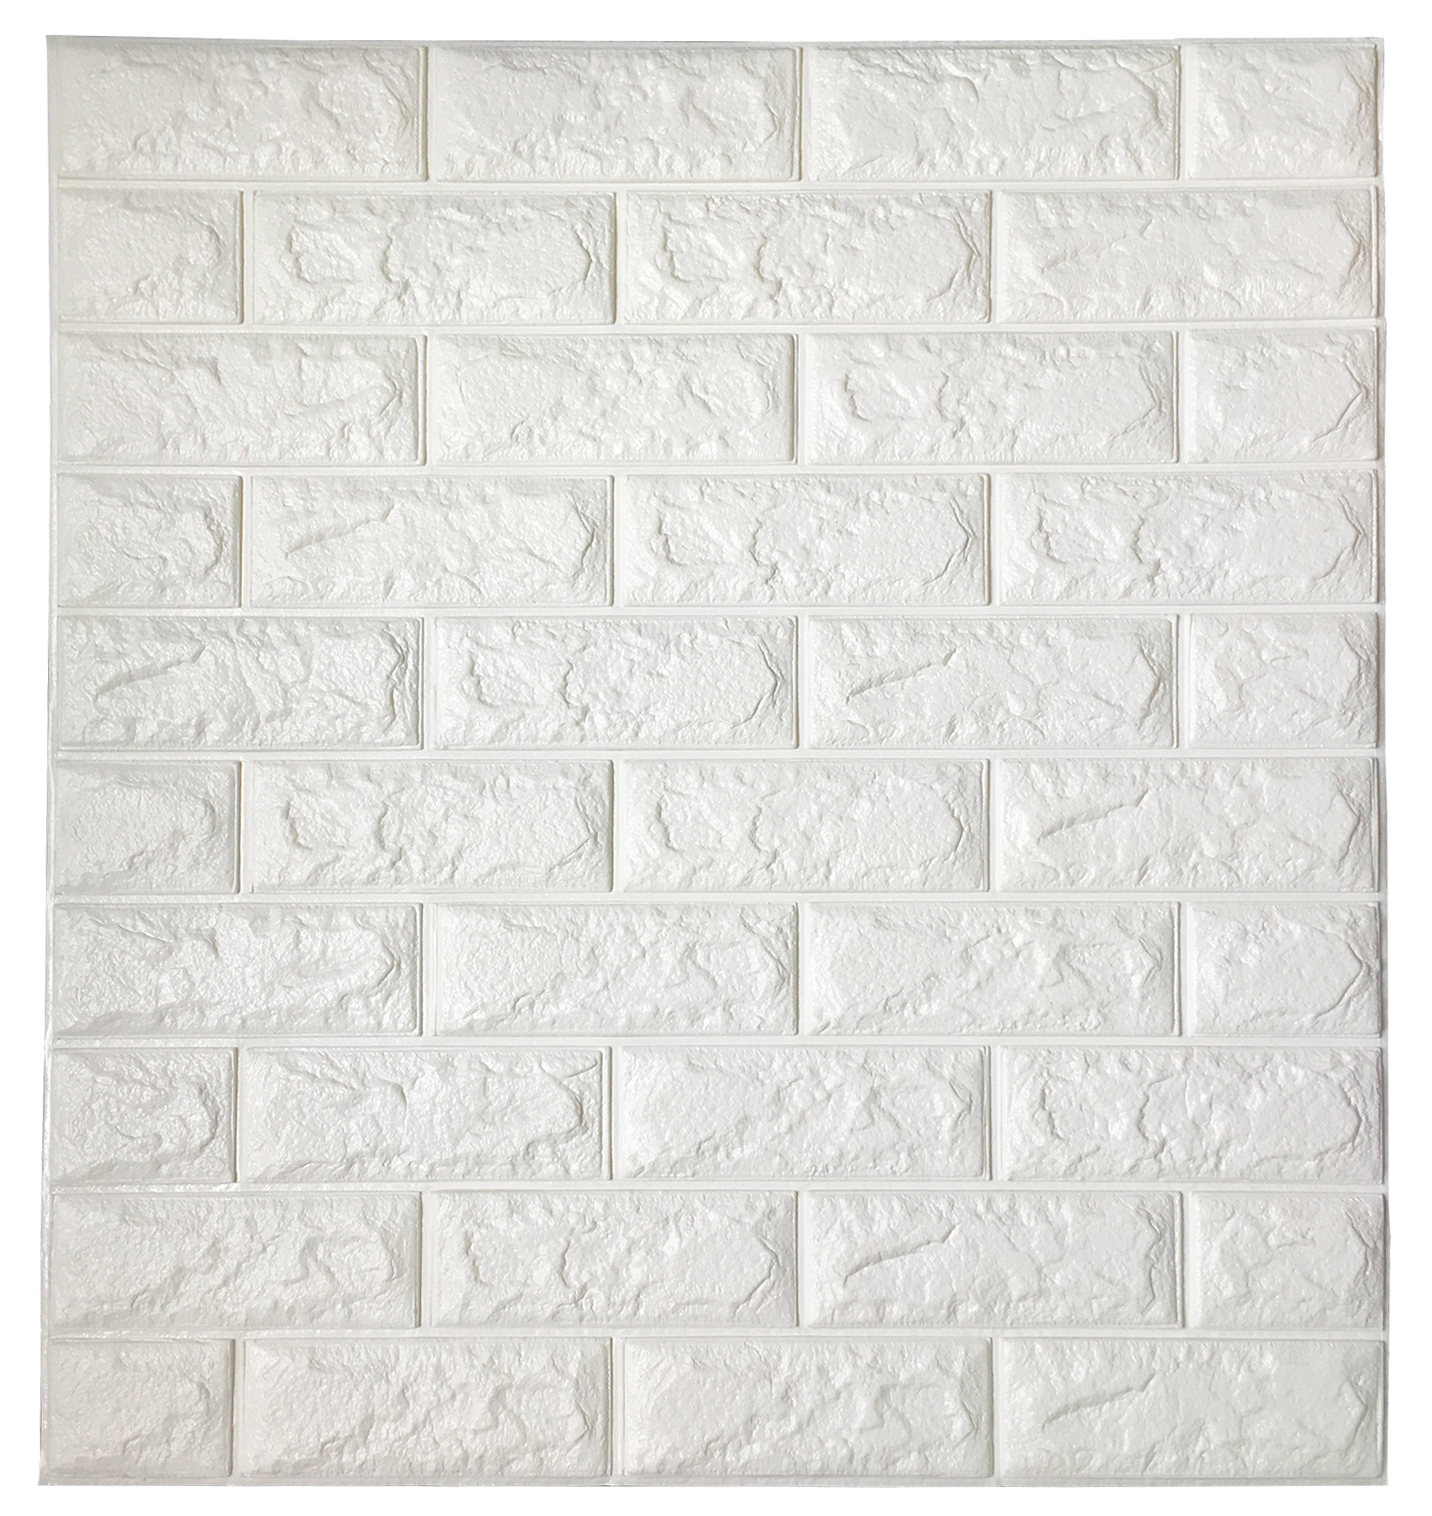 Peel stick 3d wall panels white 3d brick wallpaper 2 6 for Black 3d brick wallpaper